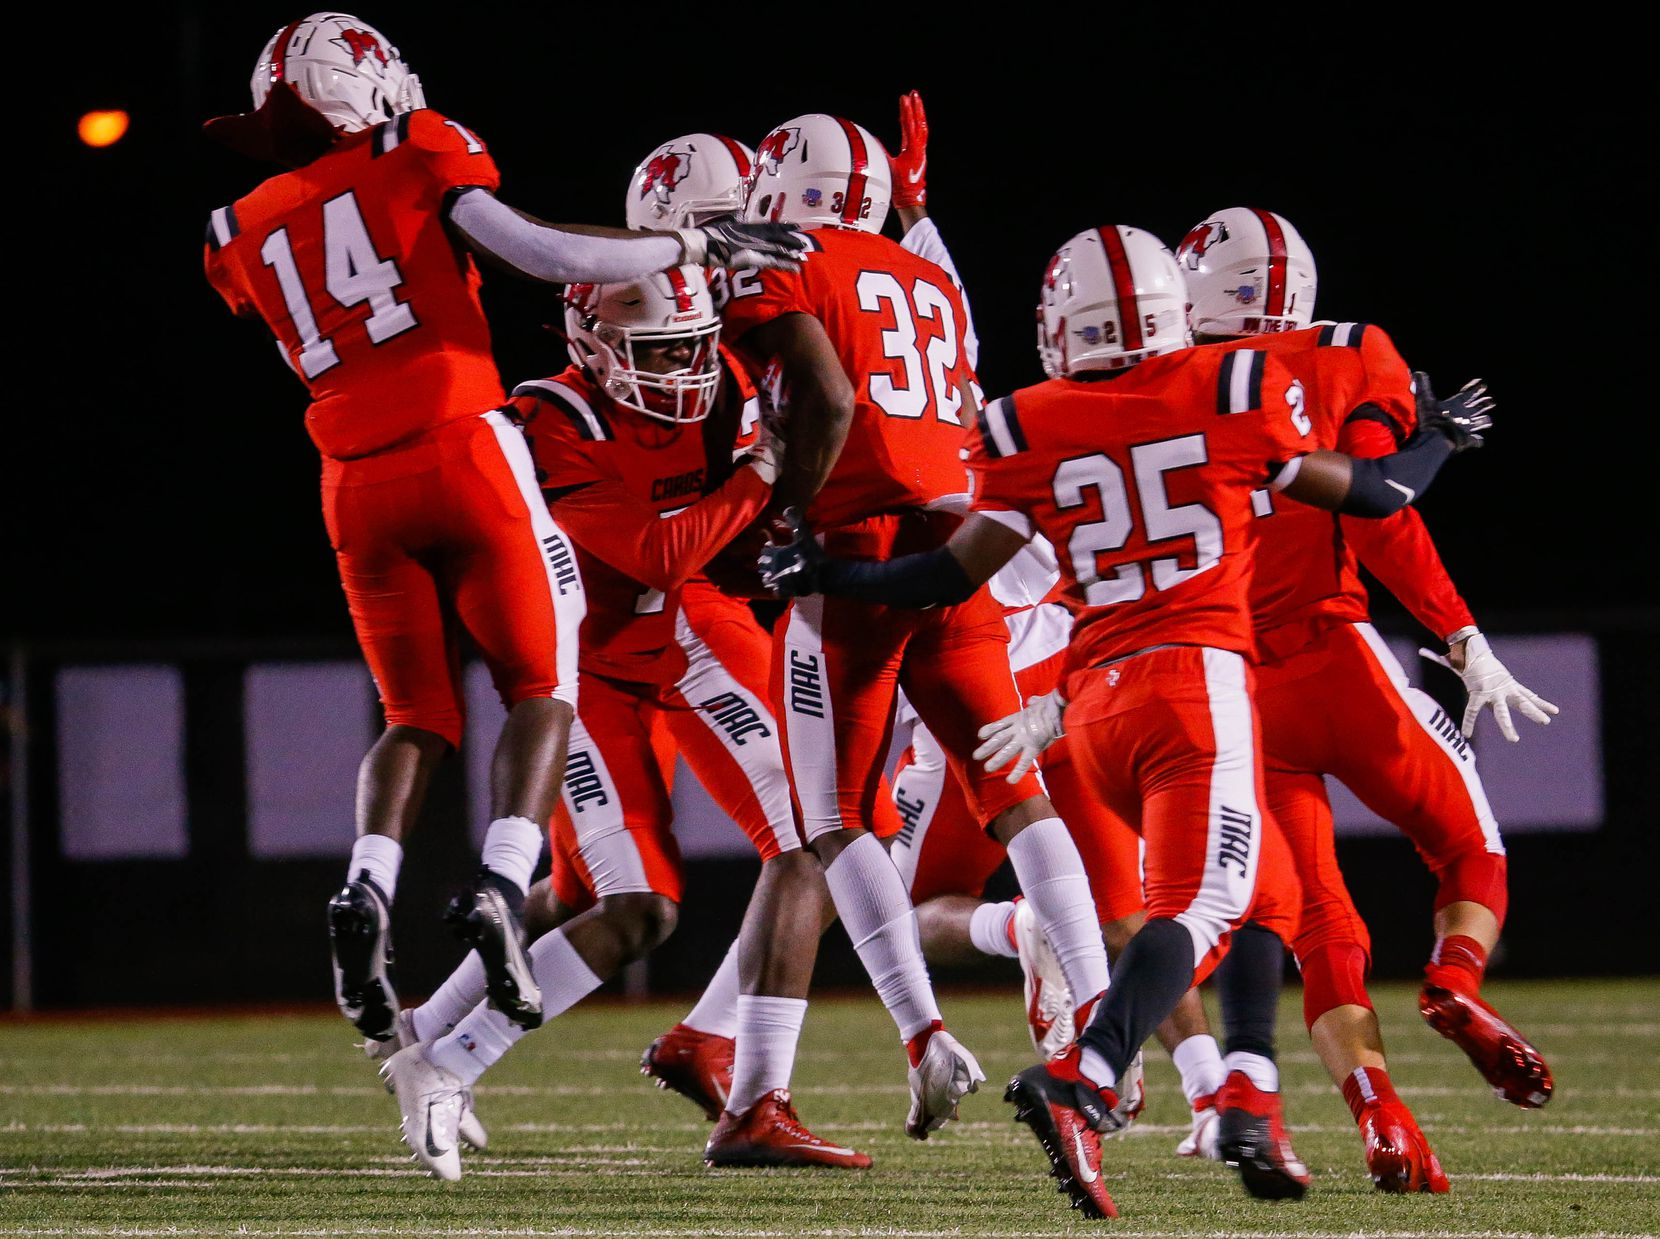 Irving MacArthur players celebrate Aaron Reagan's (32) interception during a the first half of a high school football game at Joy & Ralph Ellis Stadium in Irving on Friday, Oct. 23, 2020. (Juan Figueroa/ The Dallas Morning News)